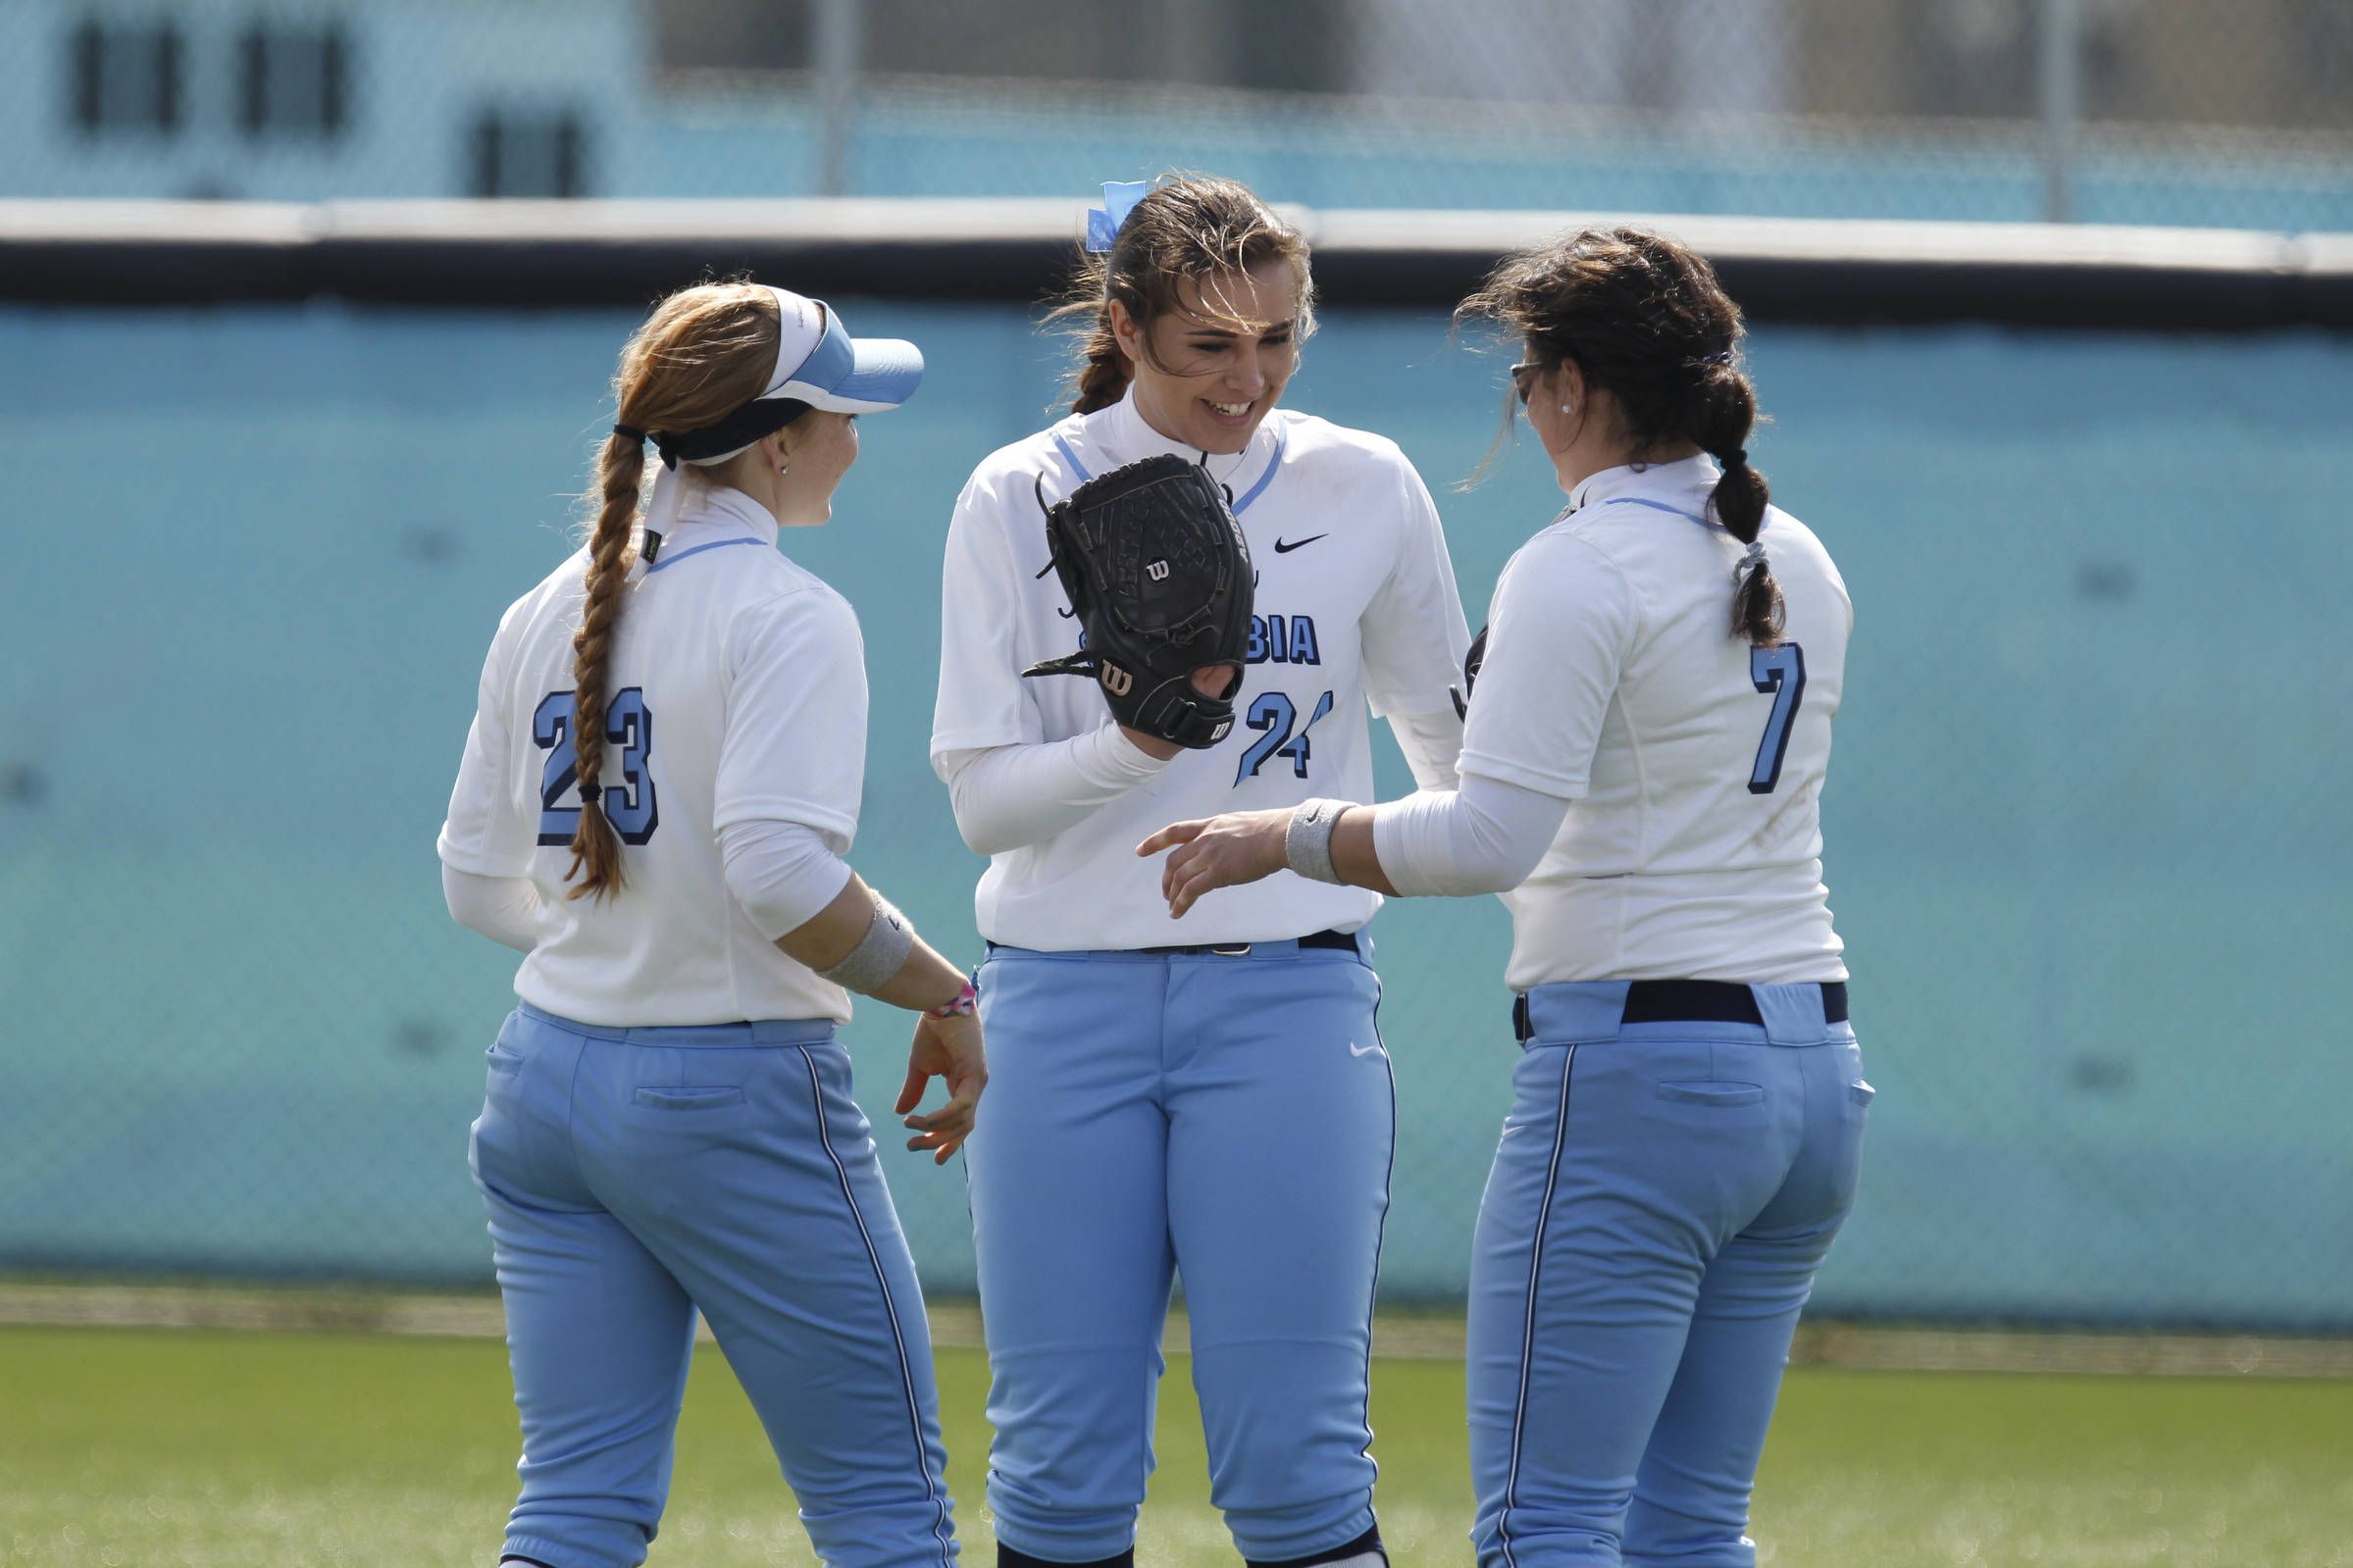 Softball Heads to Dartmouth, Harvard in First Ivy League